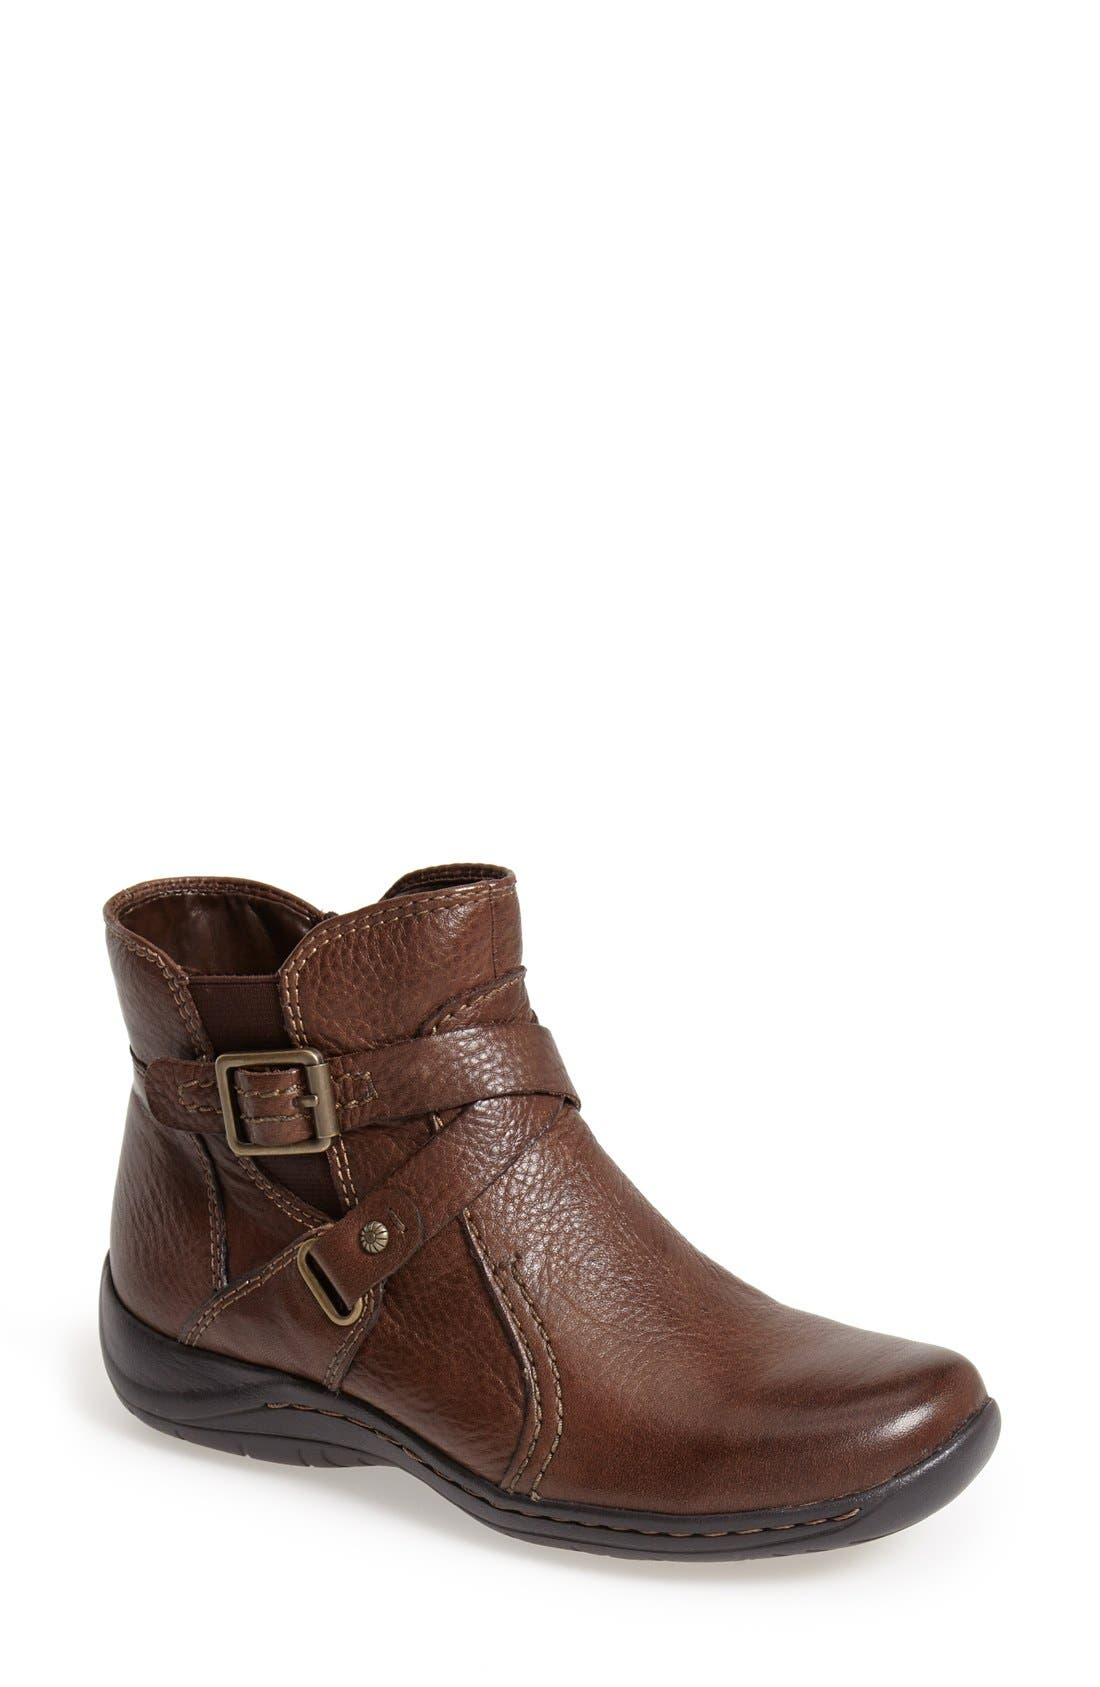 Alternate Image 1 Selected - Earth® 'Ironwood' Leather Bootie (Women)